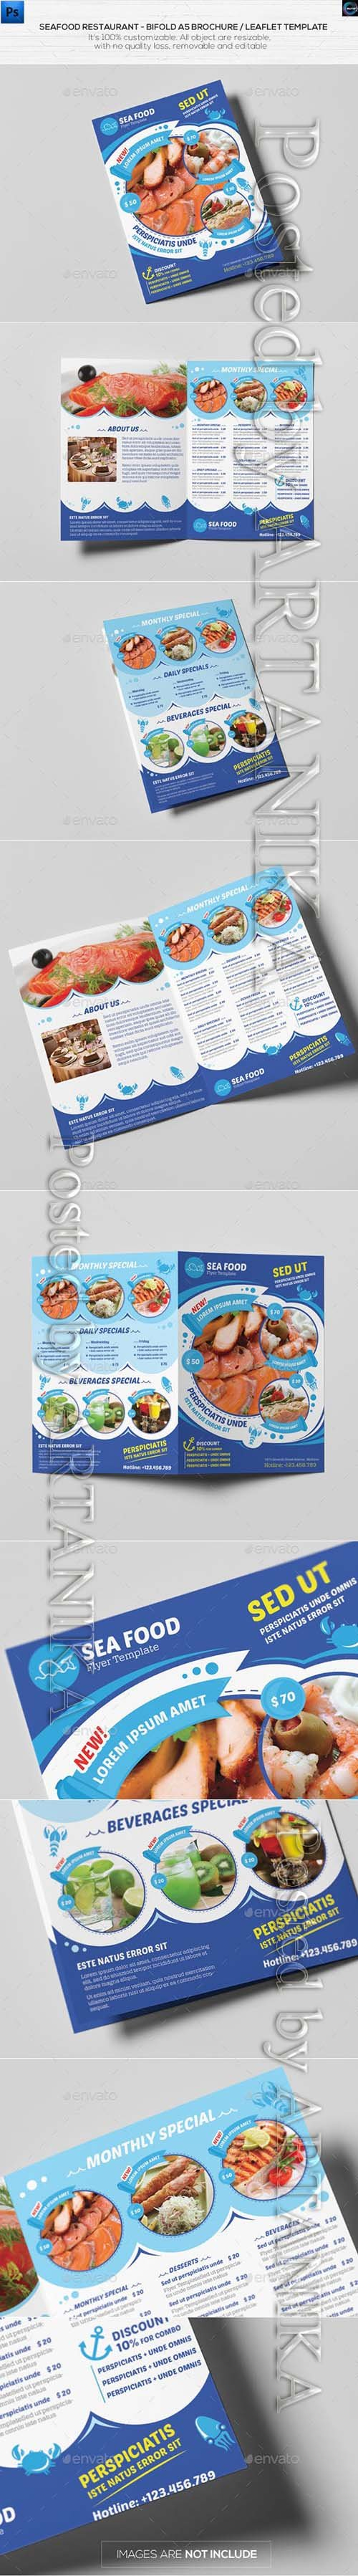 Graphicriver - Seafood Restaurant-A5 Brochure/Leaflet Template 12341412